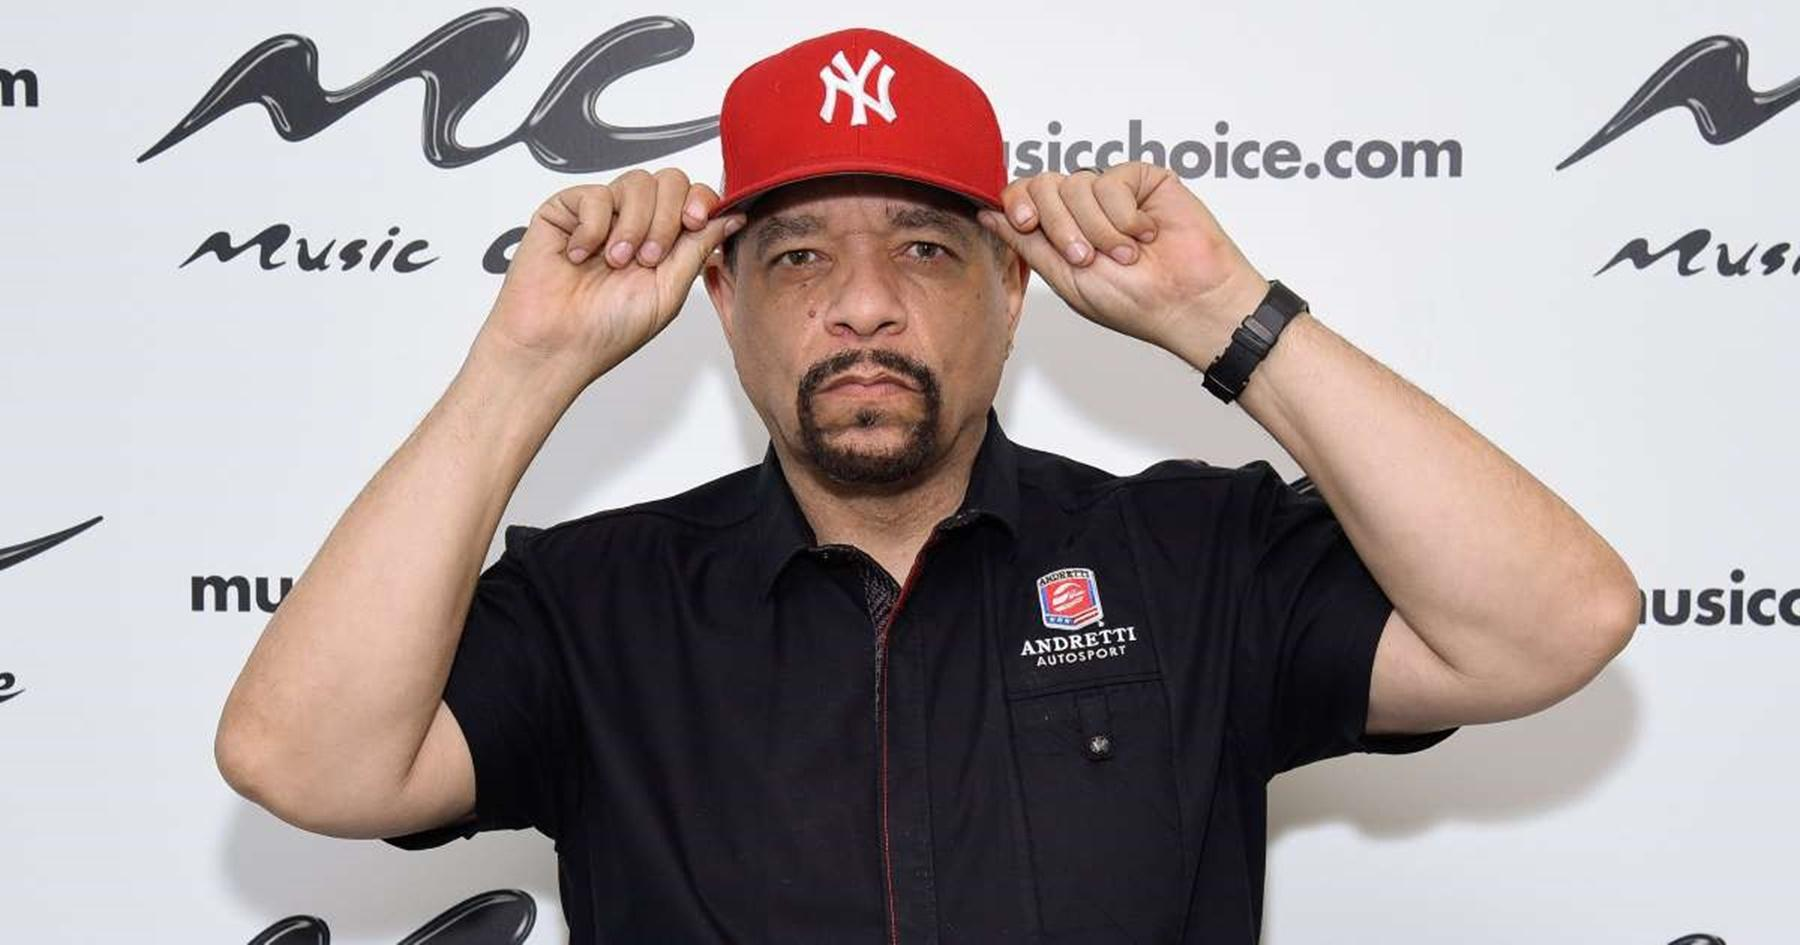 Ice-T Claims He Was Close To Shooting Unmarked Amazon Driver -- Here Is Why The Company's Response Missed The Mark